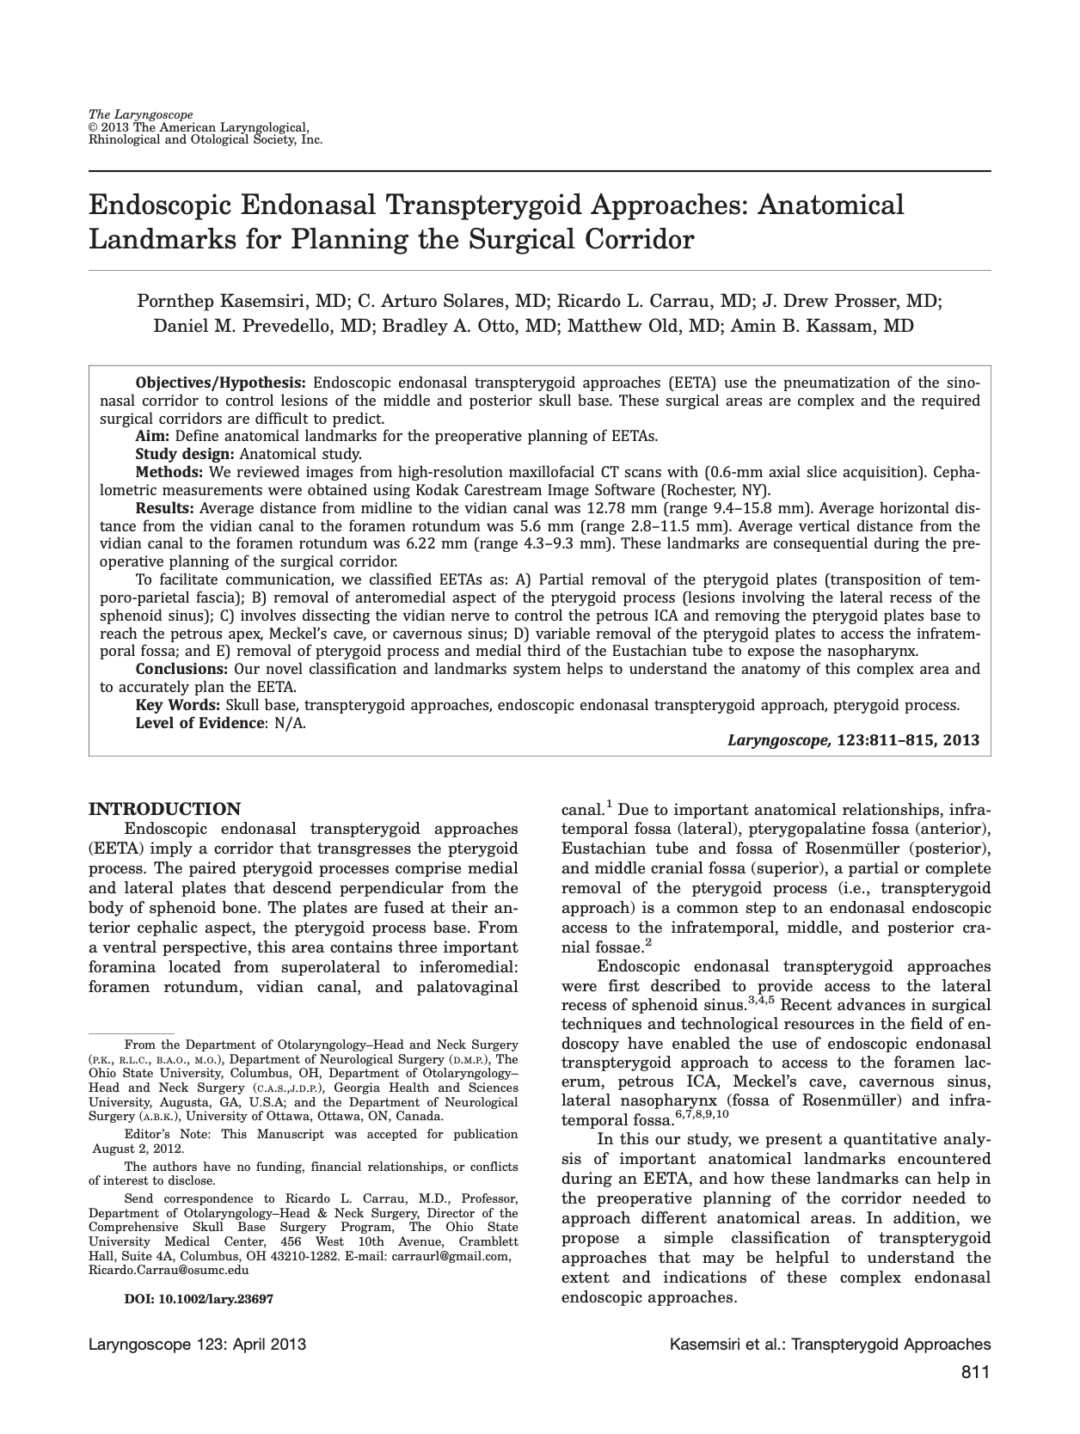 Endoscopic Endonasal Transpterygoid Approaches: Anatomical Landmarks for Planning the Surgical Corridor